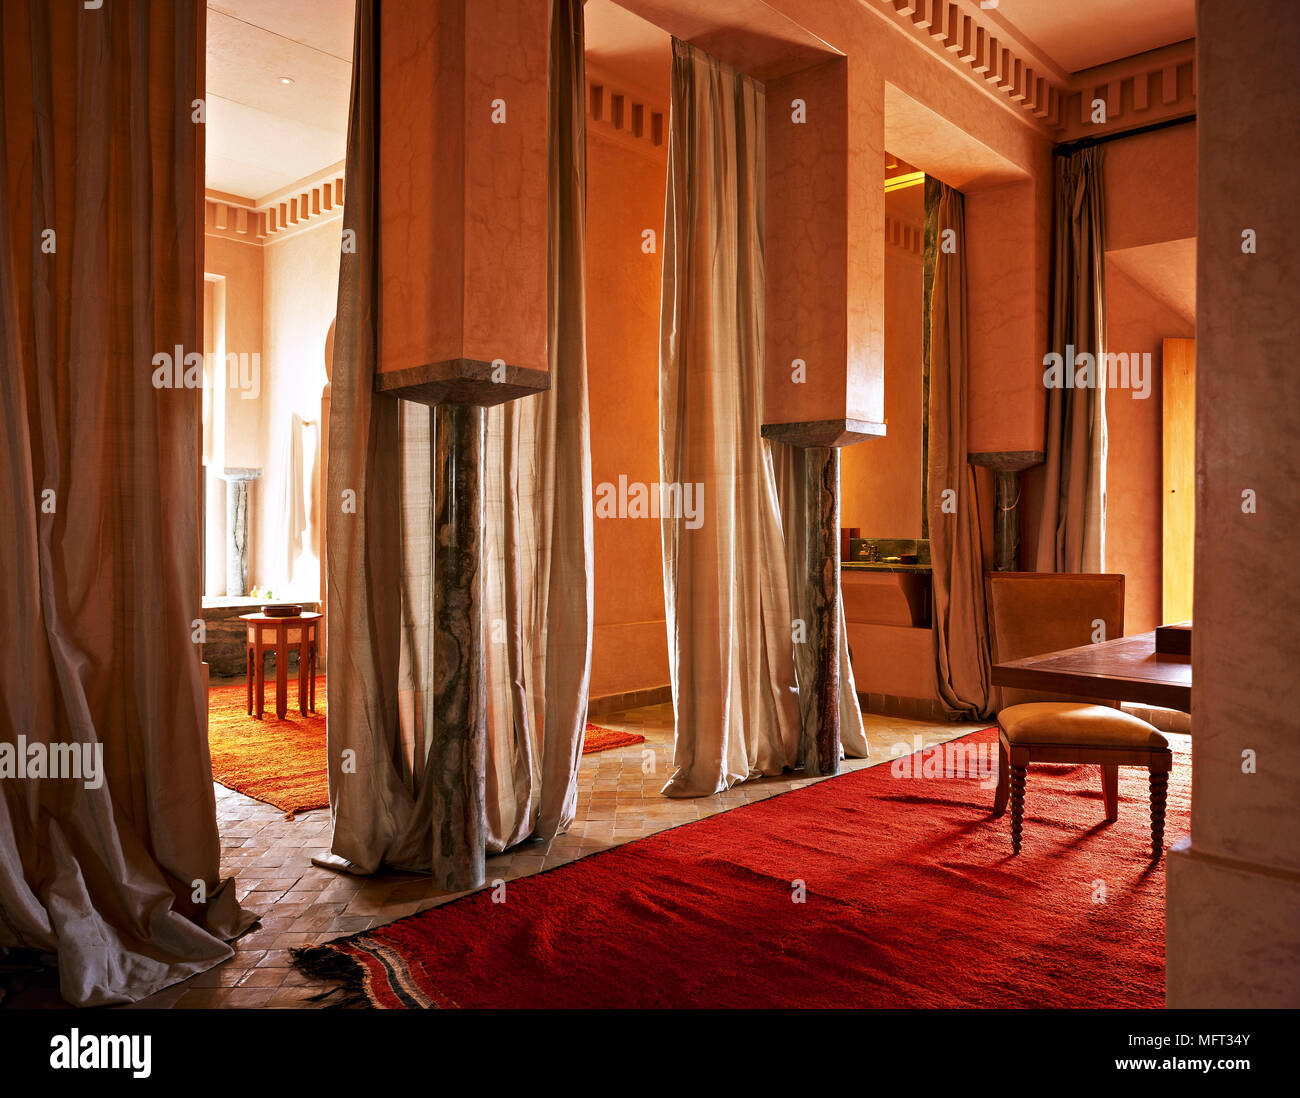 ceiling terracotta stockfotos ceiling terracotta bilder alamy. Black Bedroom Furniture Sets. Home Design Ideas